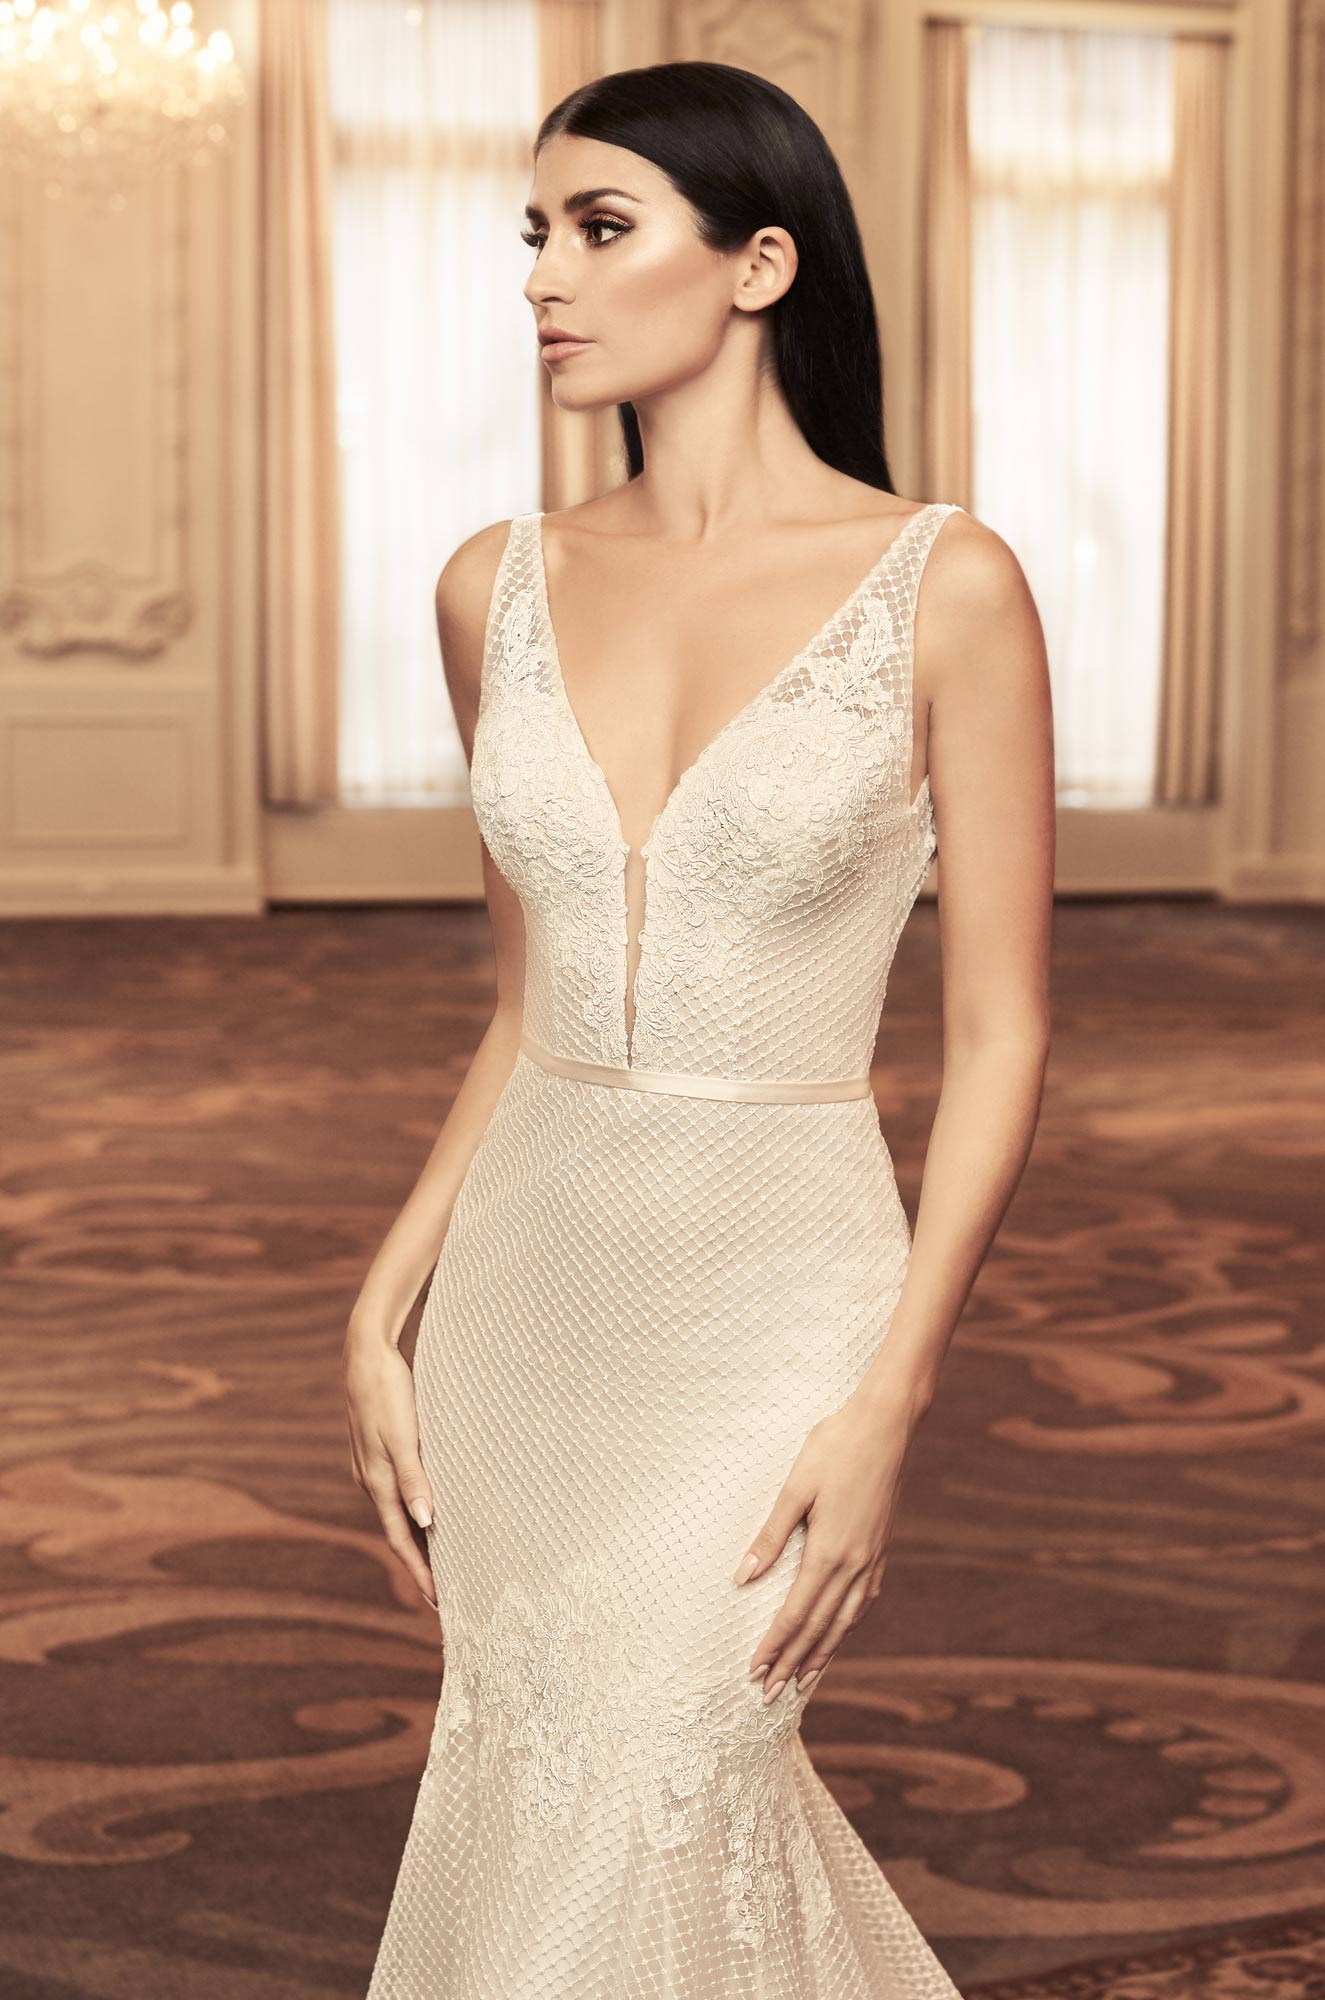 Chic Lattice Wedding Dress - Style #4806 | Paloma Blanca